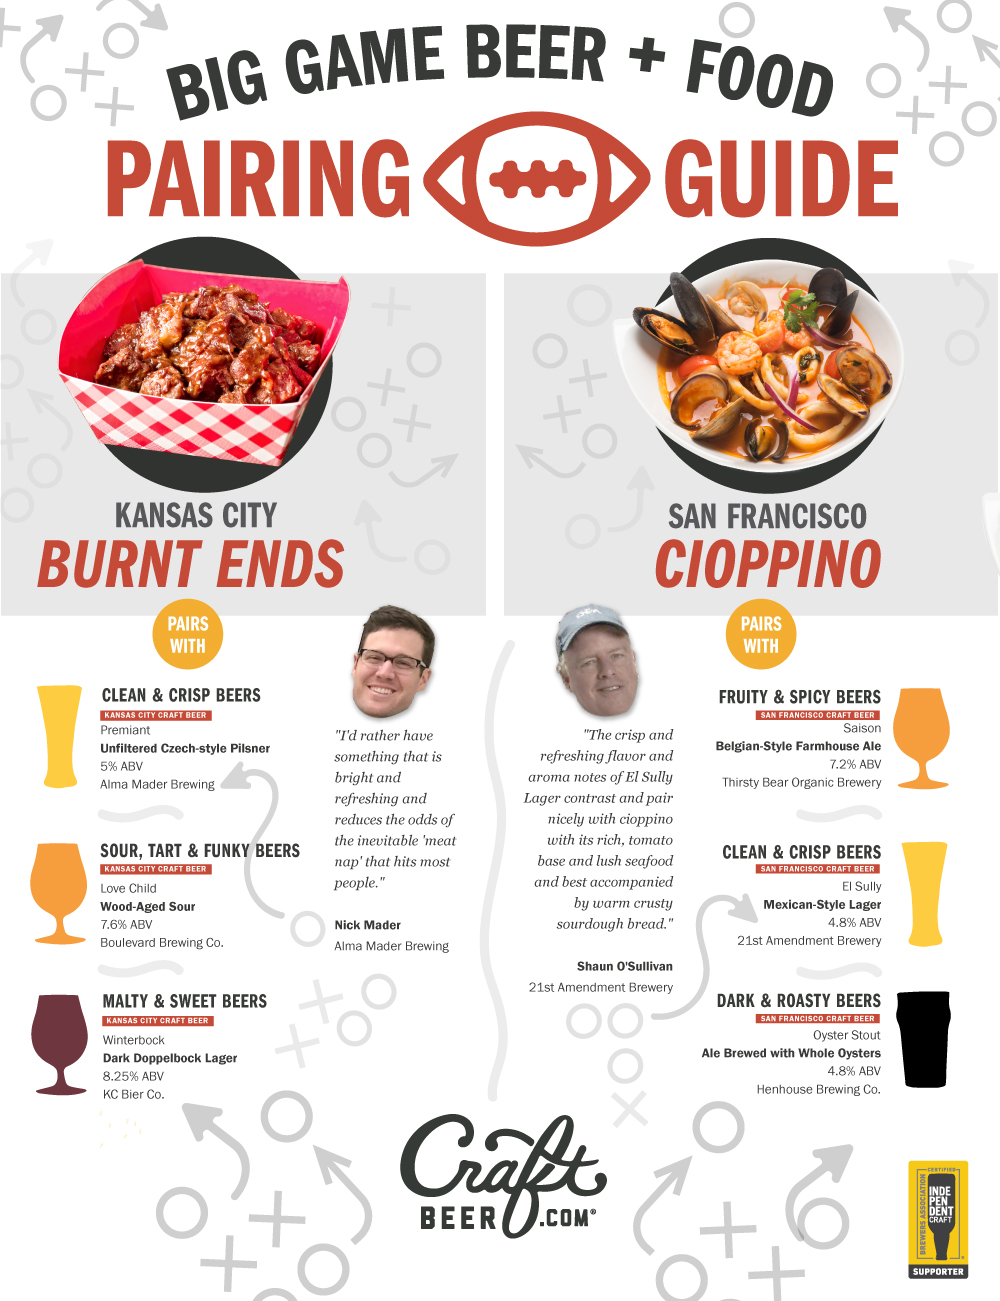 Big Game beer and food pairing guide